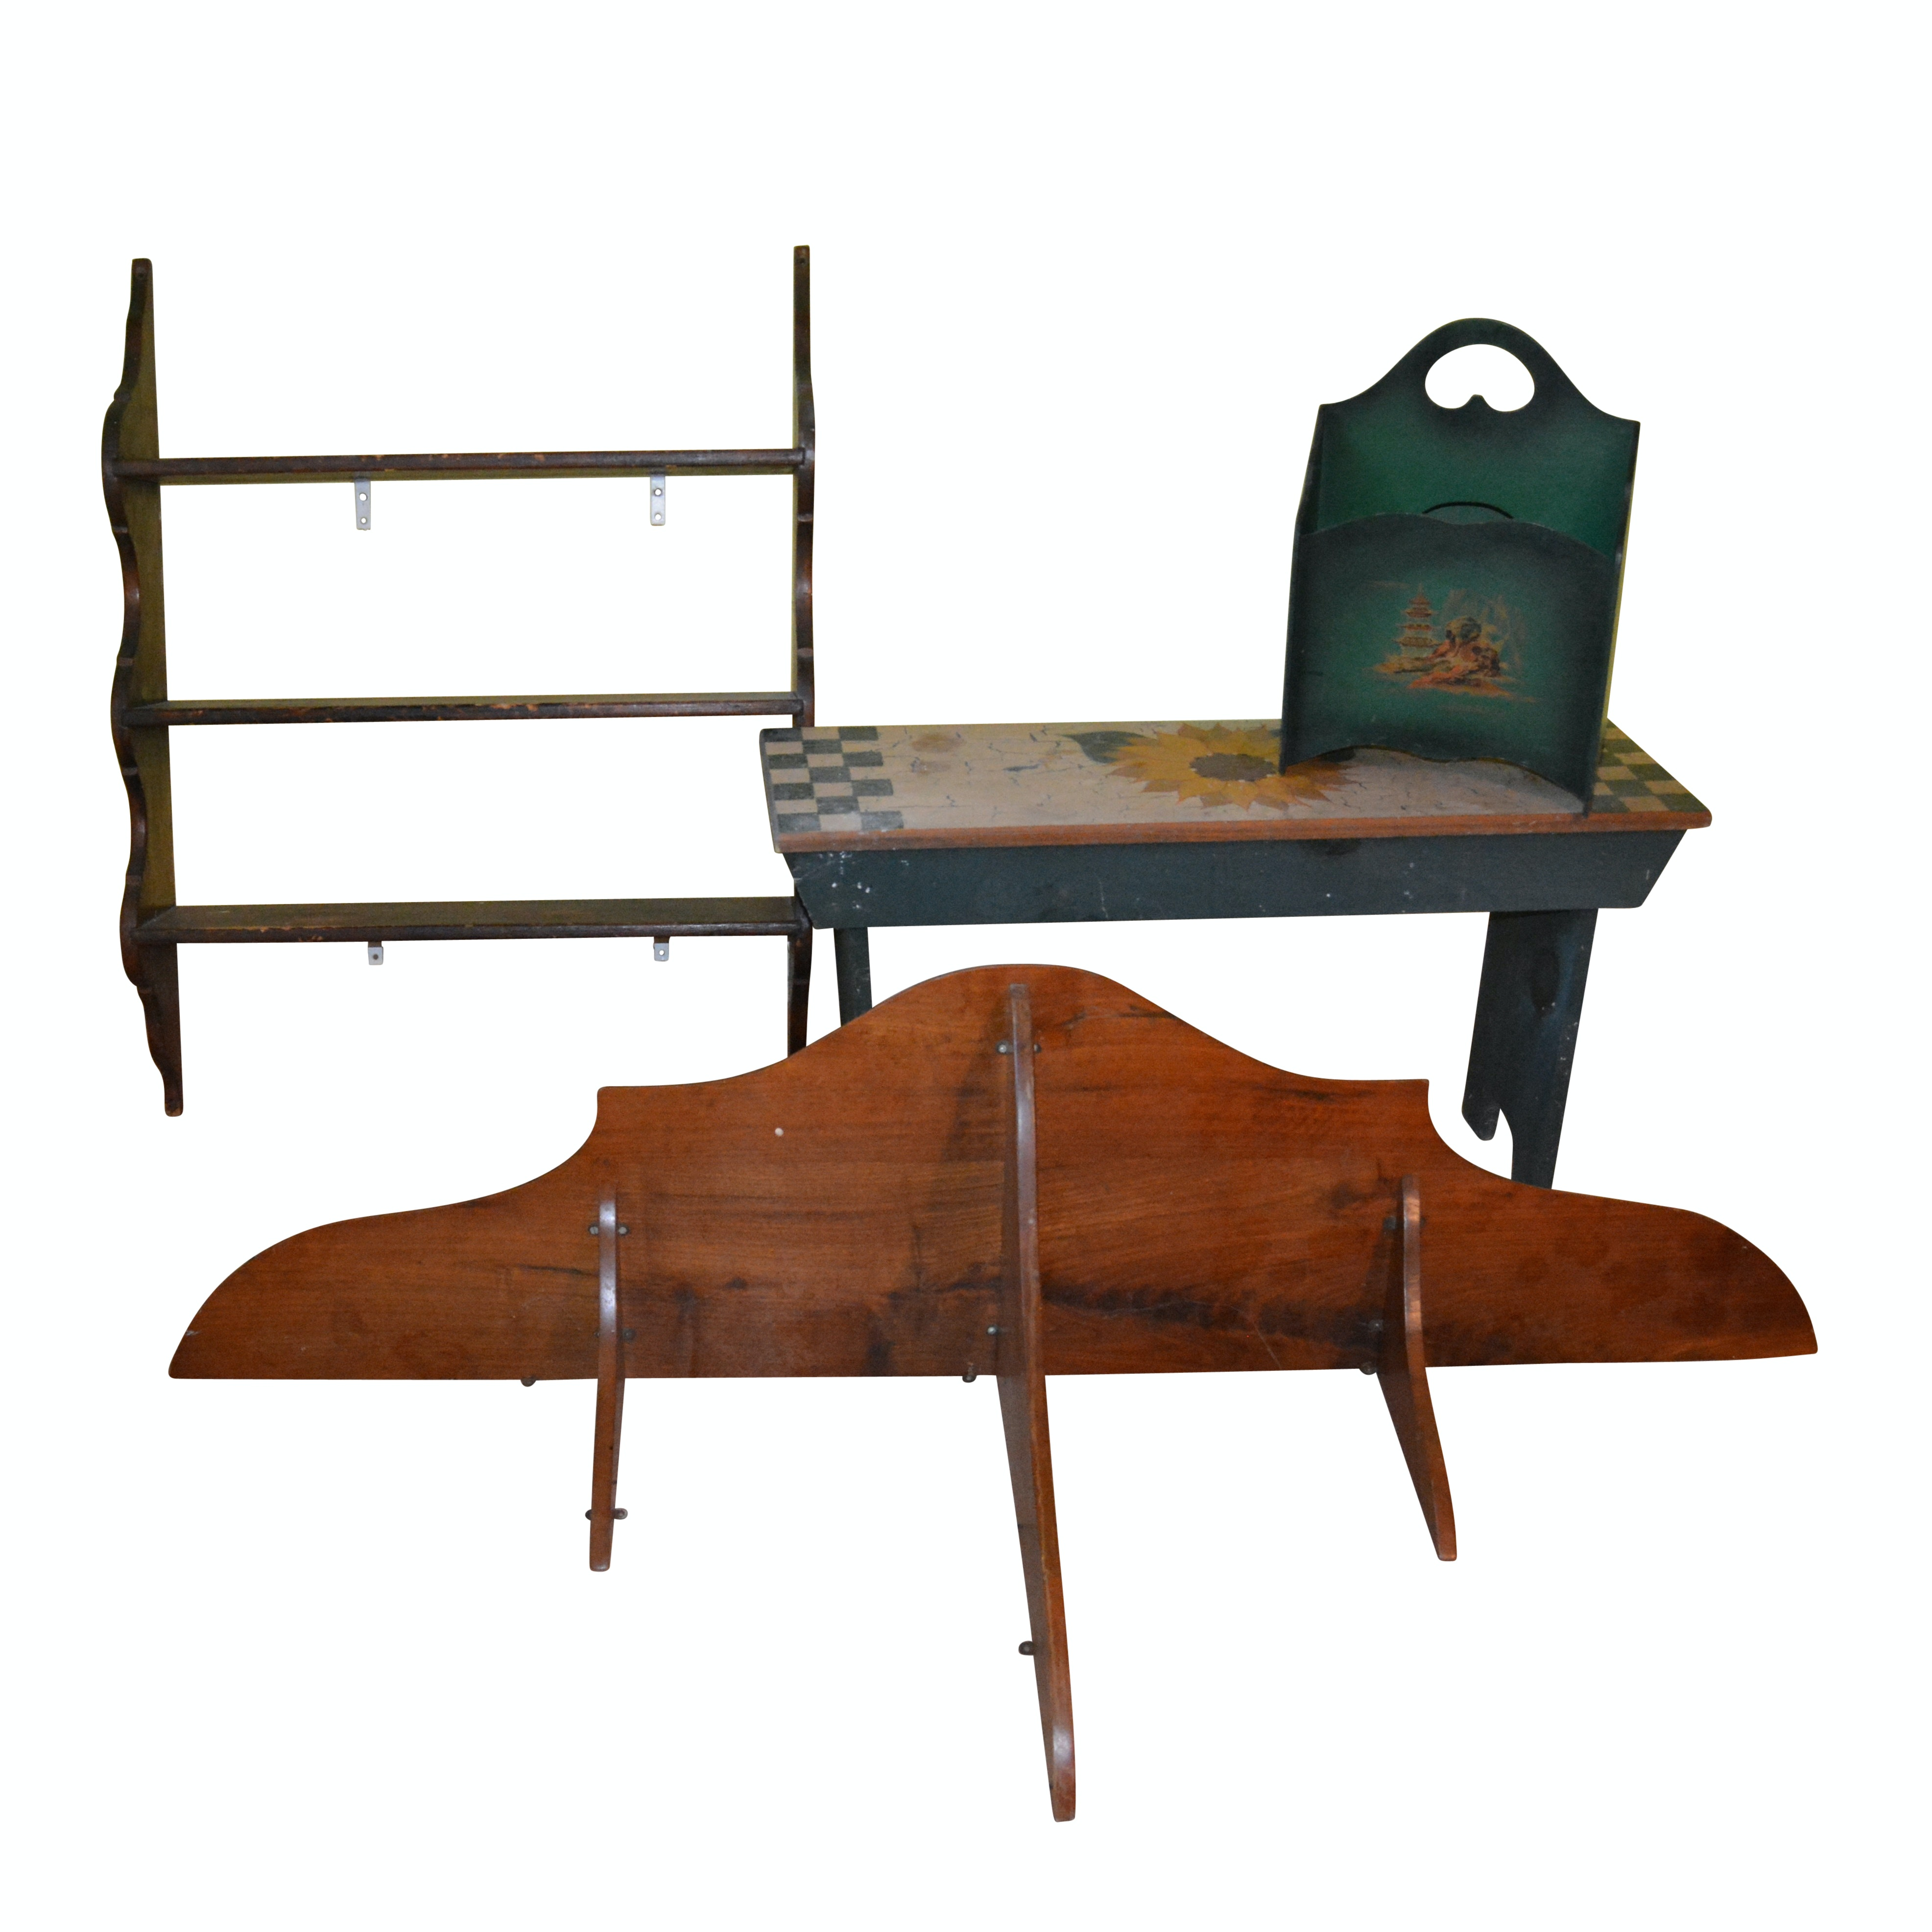 Painted Wooden Bench, Magazine Rack, Wooden Shelves, 20th Century